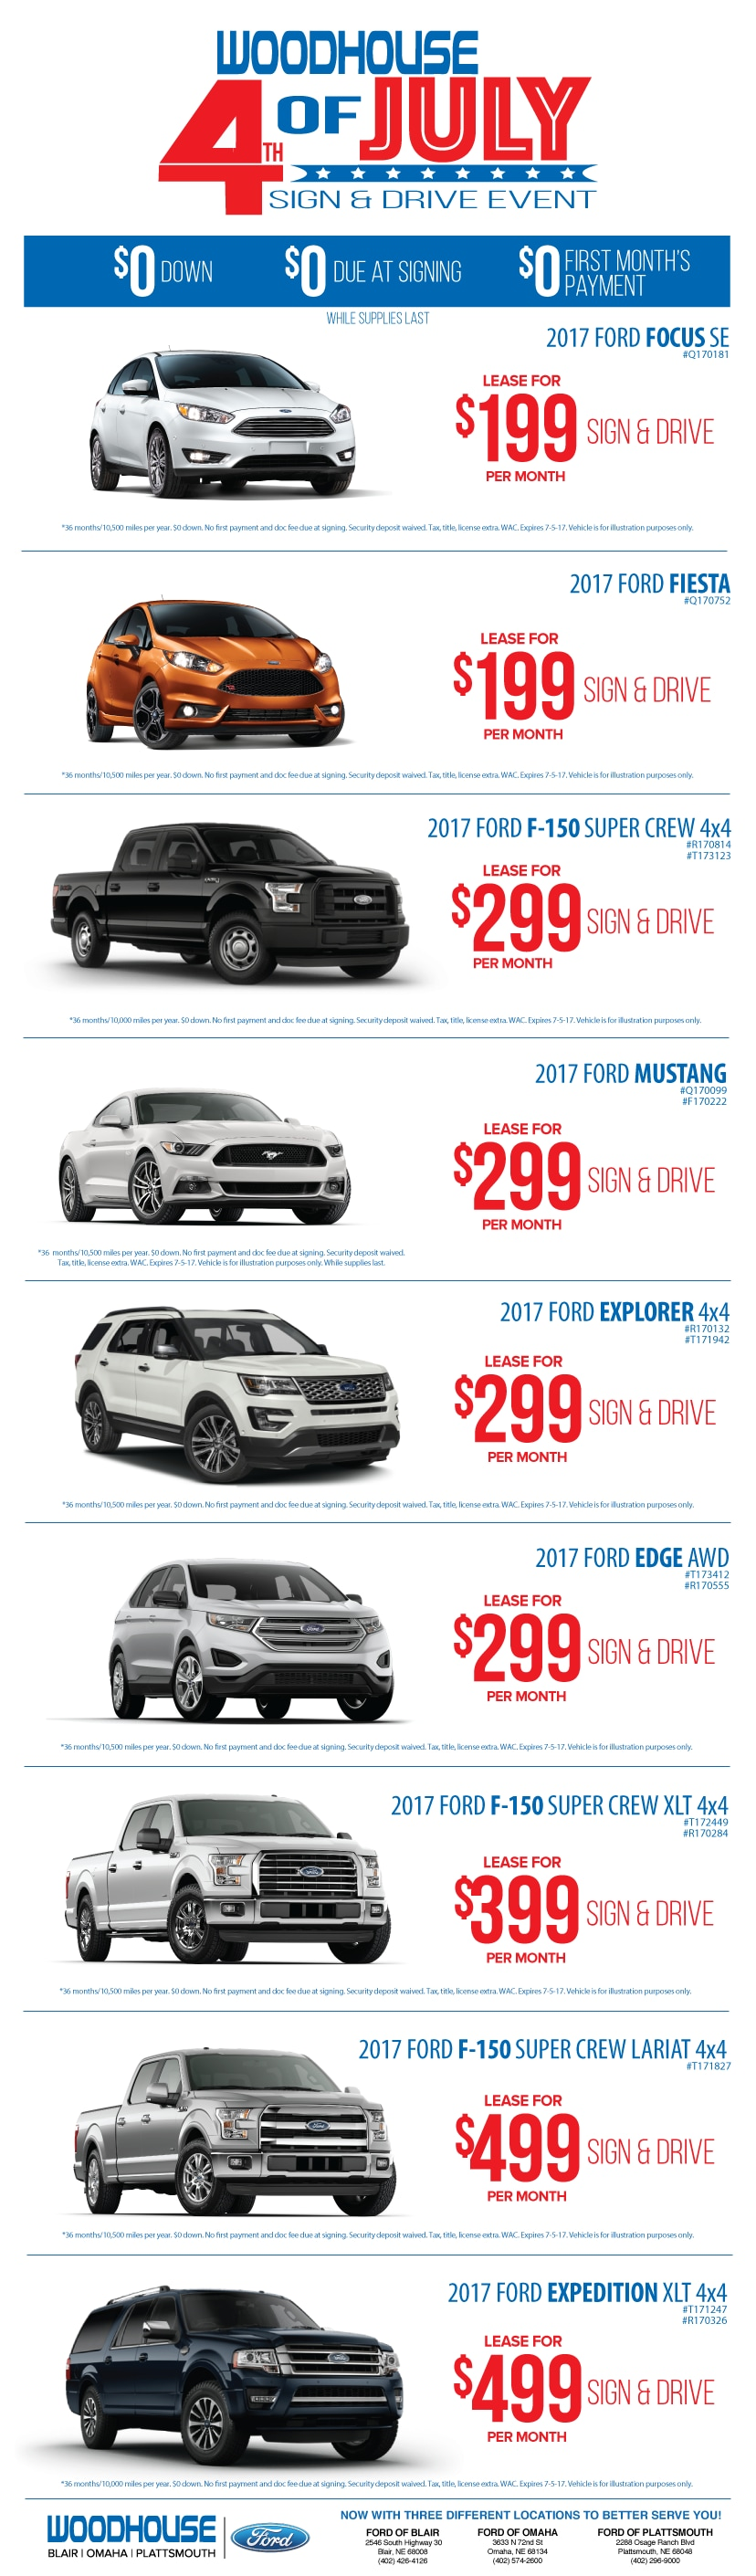 Woodhouse Ford Of Omaha Inc New Ford Dealership In Omaha NE - Ford dealers omaha